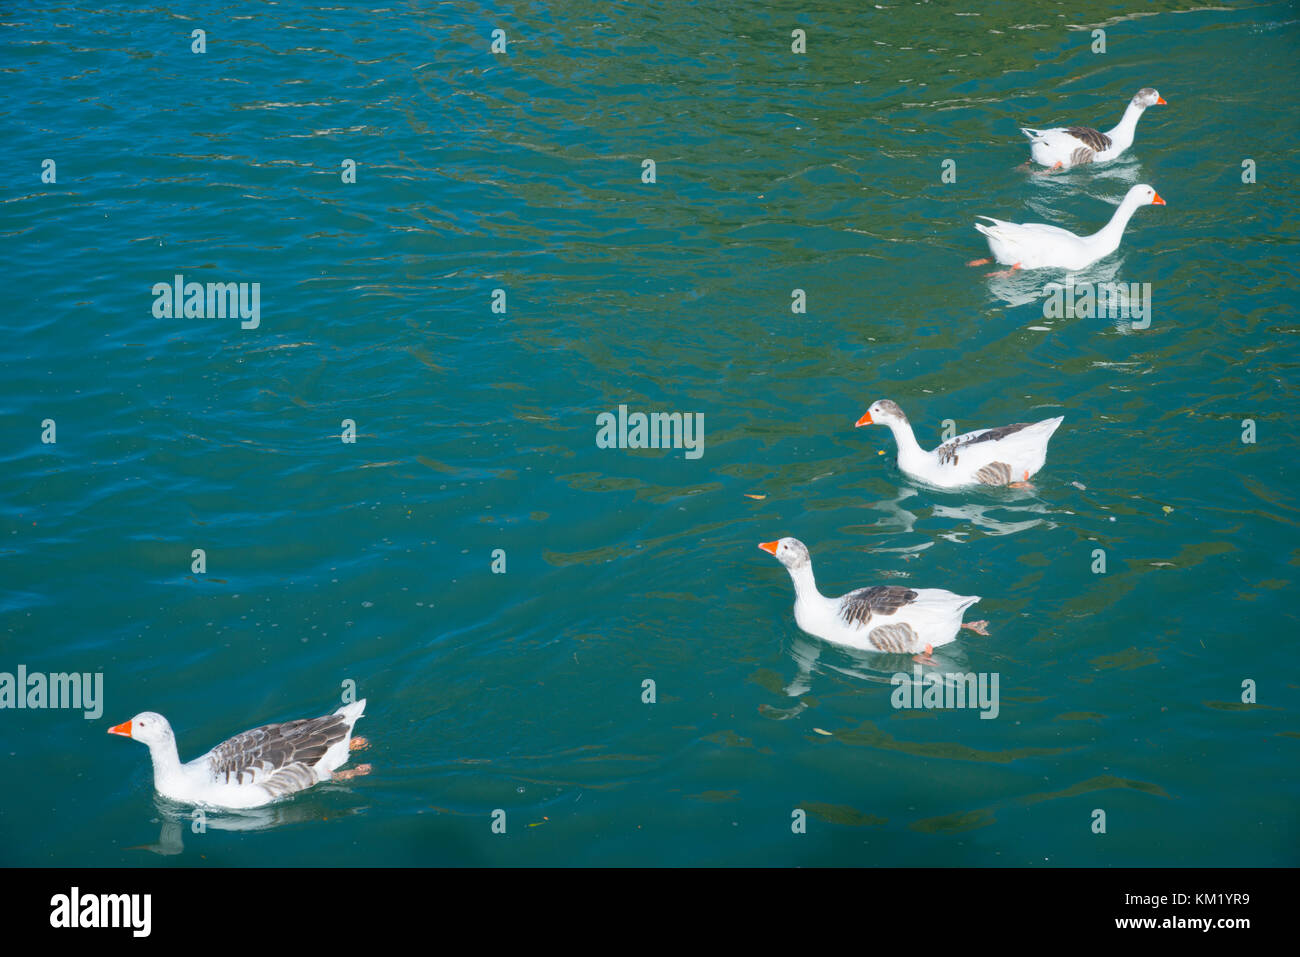 Gooses swimming in a pond. - Stock Image